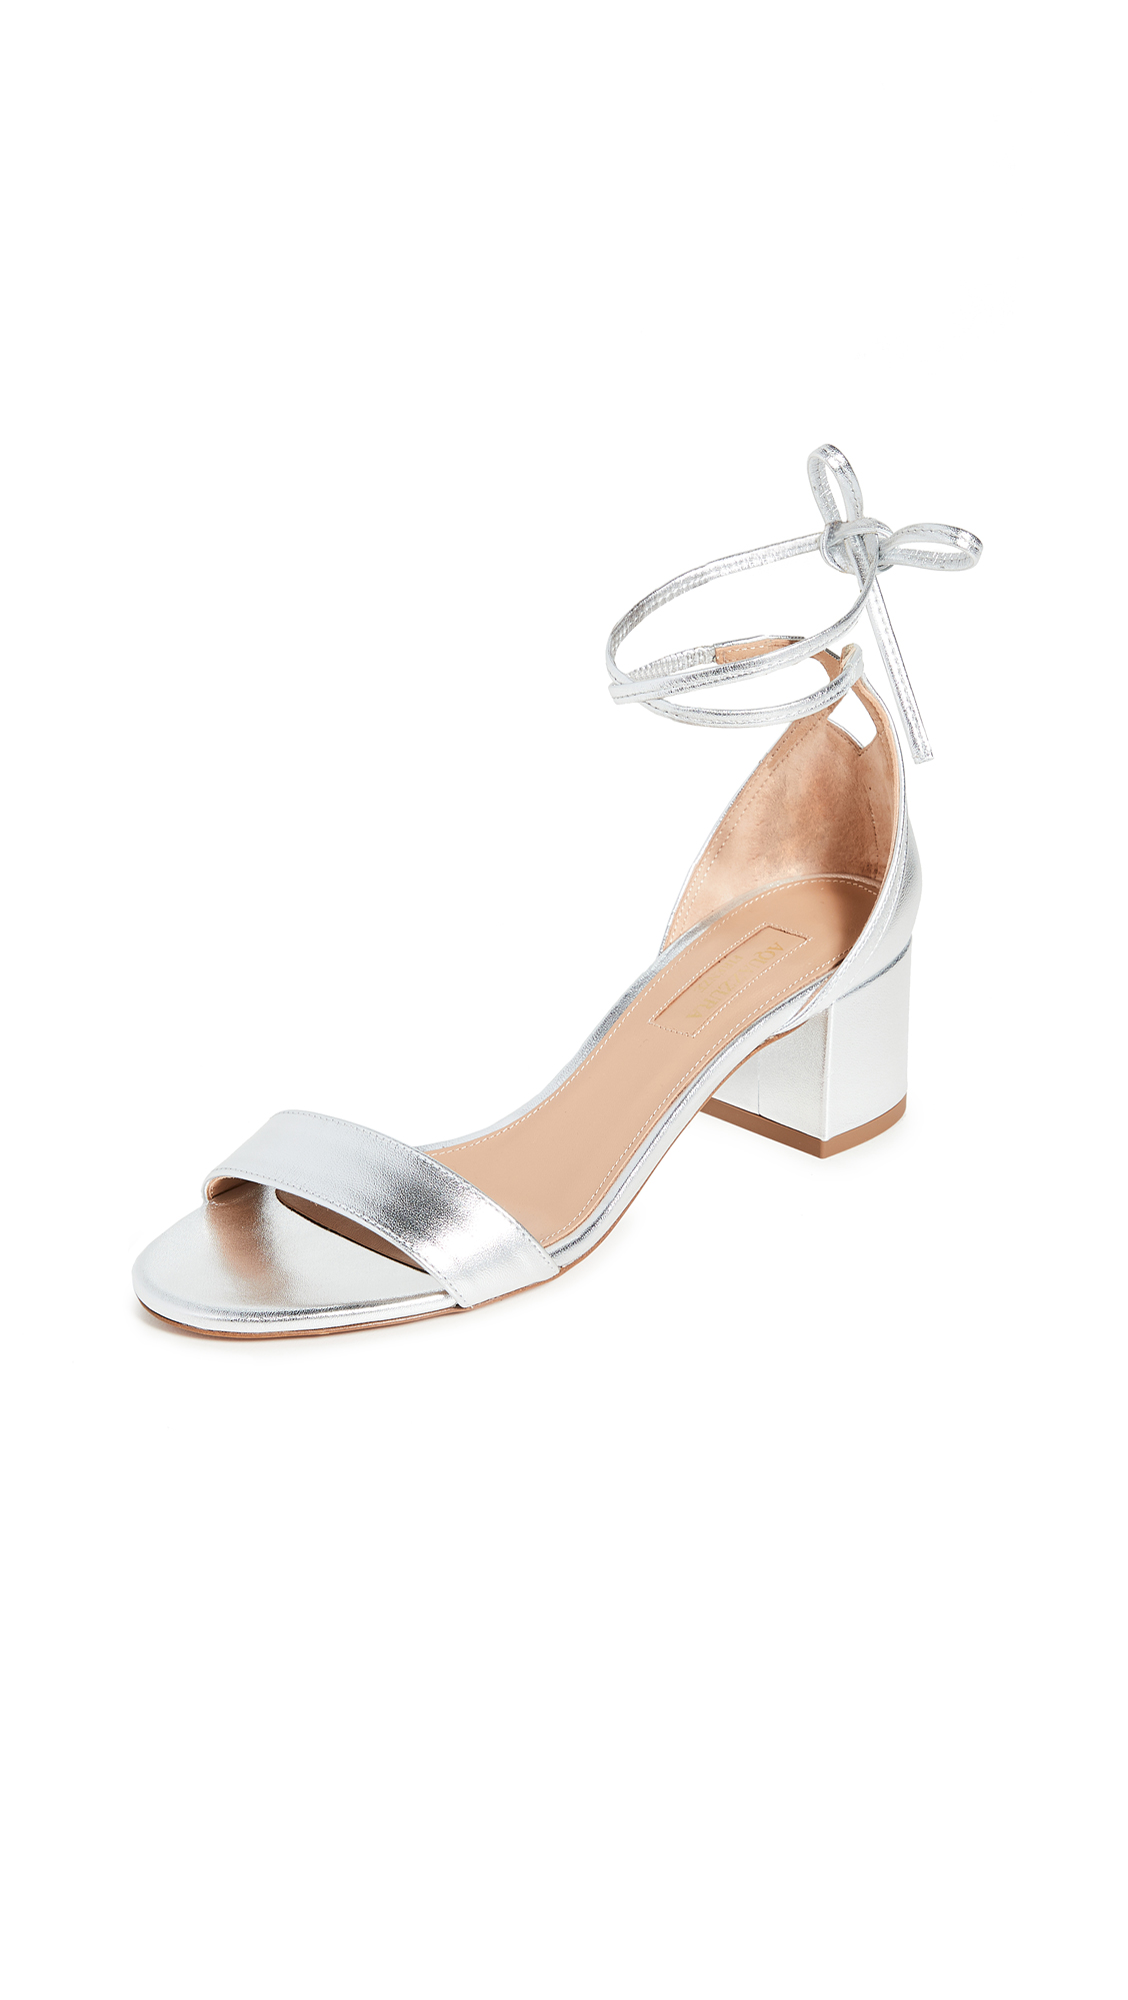 Buy Aquazzura City Sandals 50mm online, shop Aquazzura